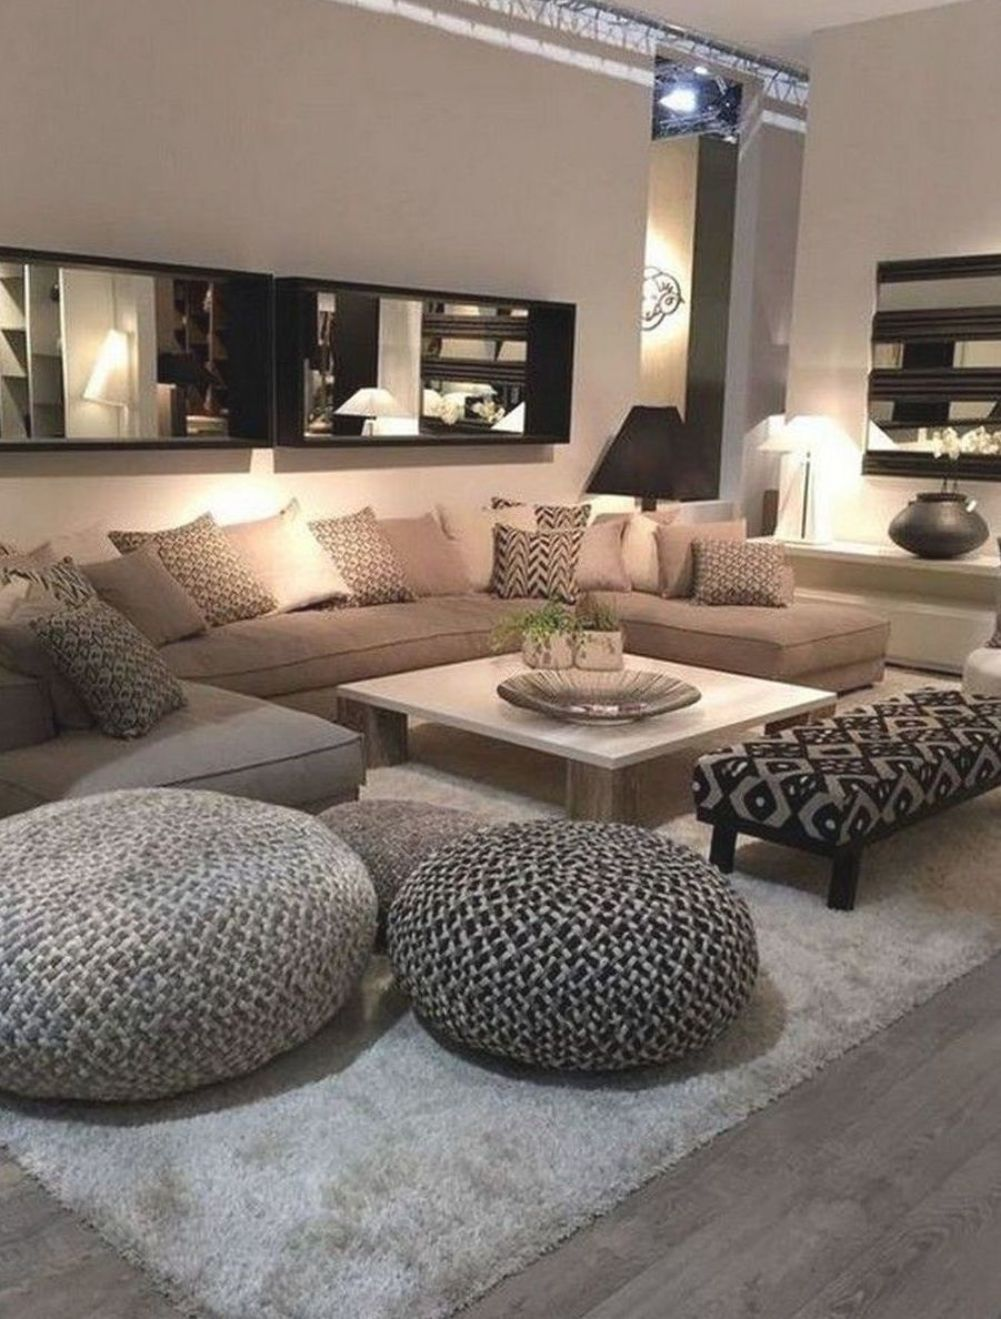 44 Classy Living Room Ideas For Your Home Nowaday Classy Living Room Warm Home Decor Cozy Living Rooms